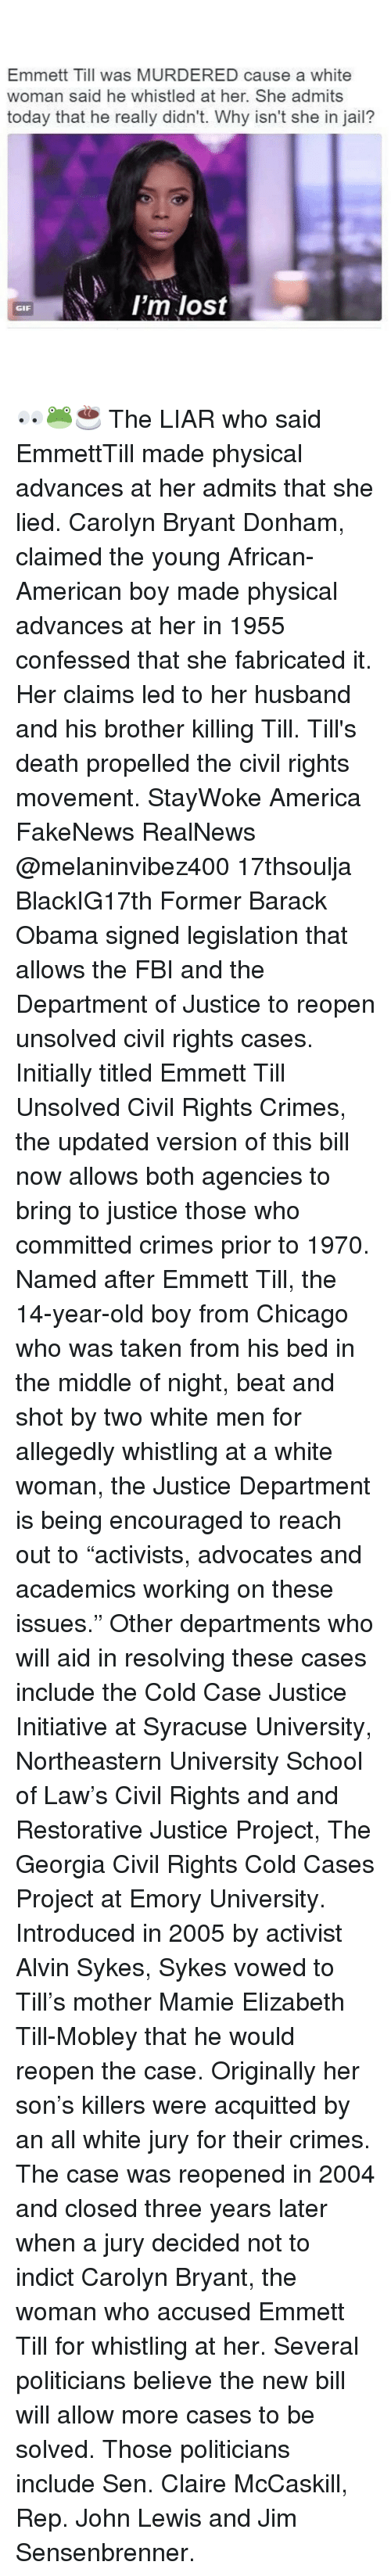 "Fbi, Memes, and Syracuse University: Emmett Till was MURDERED cause a white  woman said he whistled at her. She admits  today that he really didn't. Why isn't she in jail?  I'm lost  GIF 👀🐸☕️ The LIAR who said EmmettTill made physical advances at her admits that she lied. Carolyn Bryant Donham, claimed the young African-American boy made physical advances at her in 1955 confessed that she fabricated it. Her claims led to her husband and his brother killing Till. Till's death propelled the civil rights movement. StayWoke America FakeNews RealNews @melaninvibez400 17thsoulja BlackIG17th Former Barack Obama signed legislation that allows the FBI and the Department of Justice to reopen unsolved civil rights cases. Initially titled Emmett Till Unsolved Civil Rights Crimes, the updated version of this bill now allows both agencies to bring to justice those who committed crimes prior to 1970. Named after Emmett Till, the 14-year-old boy from Chicago who was taken from his bed in the middle of night, beat and shot by two white men for allegedly whistling at a white woman, the Justice Department is being encouraged to reach out to ""activists, advocates and academics working on these issues."" Other departments who will aid in resolving these cases include the Cold Case Justice Initiative at Syracuse University, Northeastern University School of Law's Civil Rights and and Restorative Justice Project, The Georgia Civil Rights Cold Cases Project at Emory University. Introduced in 2005 by activist Alvin Sykes, Sykes vowed to Till's mother Mamie Elizabeth Till-Mobley that he would reopen the case. Originally her son's killers were acquitted by an all white jury for their crimes. The case was reopened in 2004 and closed three years later when a jury decided not to indict Carolyn Bryant, the woman who accused Emmett Till for whistling at her. Several politicians believe the new bill will allow more cases to be solved. Those politicians include Sen. Claire McCaskill, Rep. John Lewis and Jim Sensenbrenner."